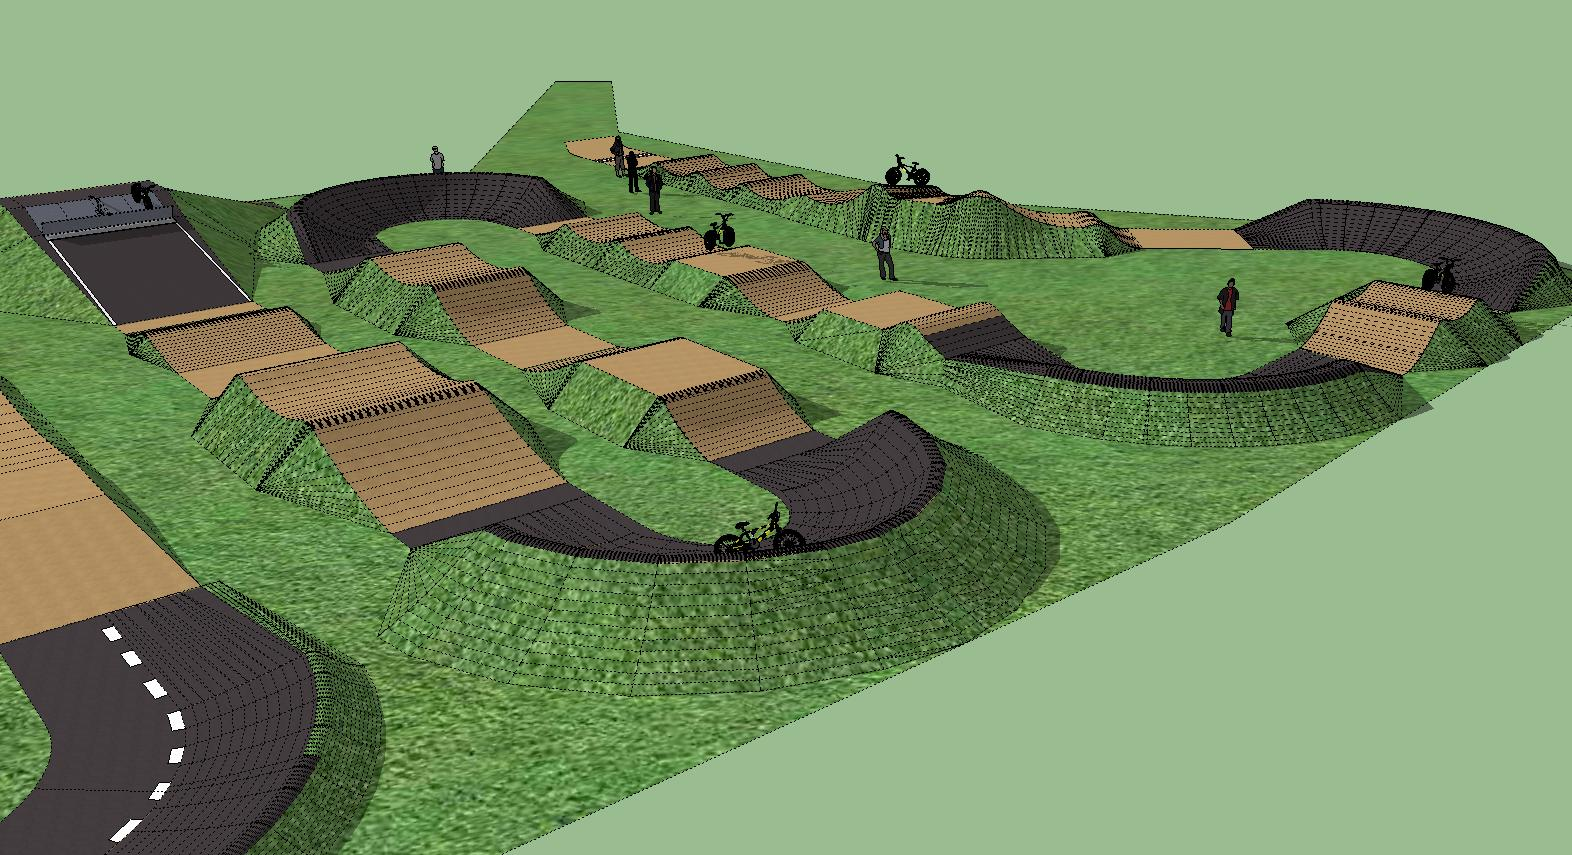 Is There Any 3d Dirt Jump Track Software Available